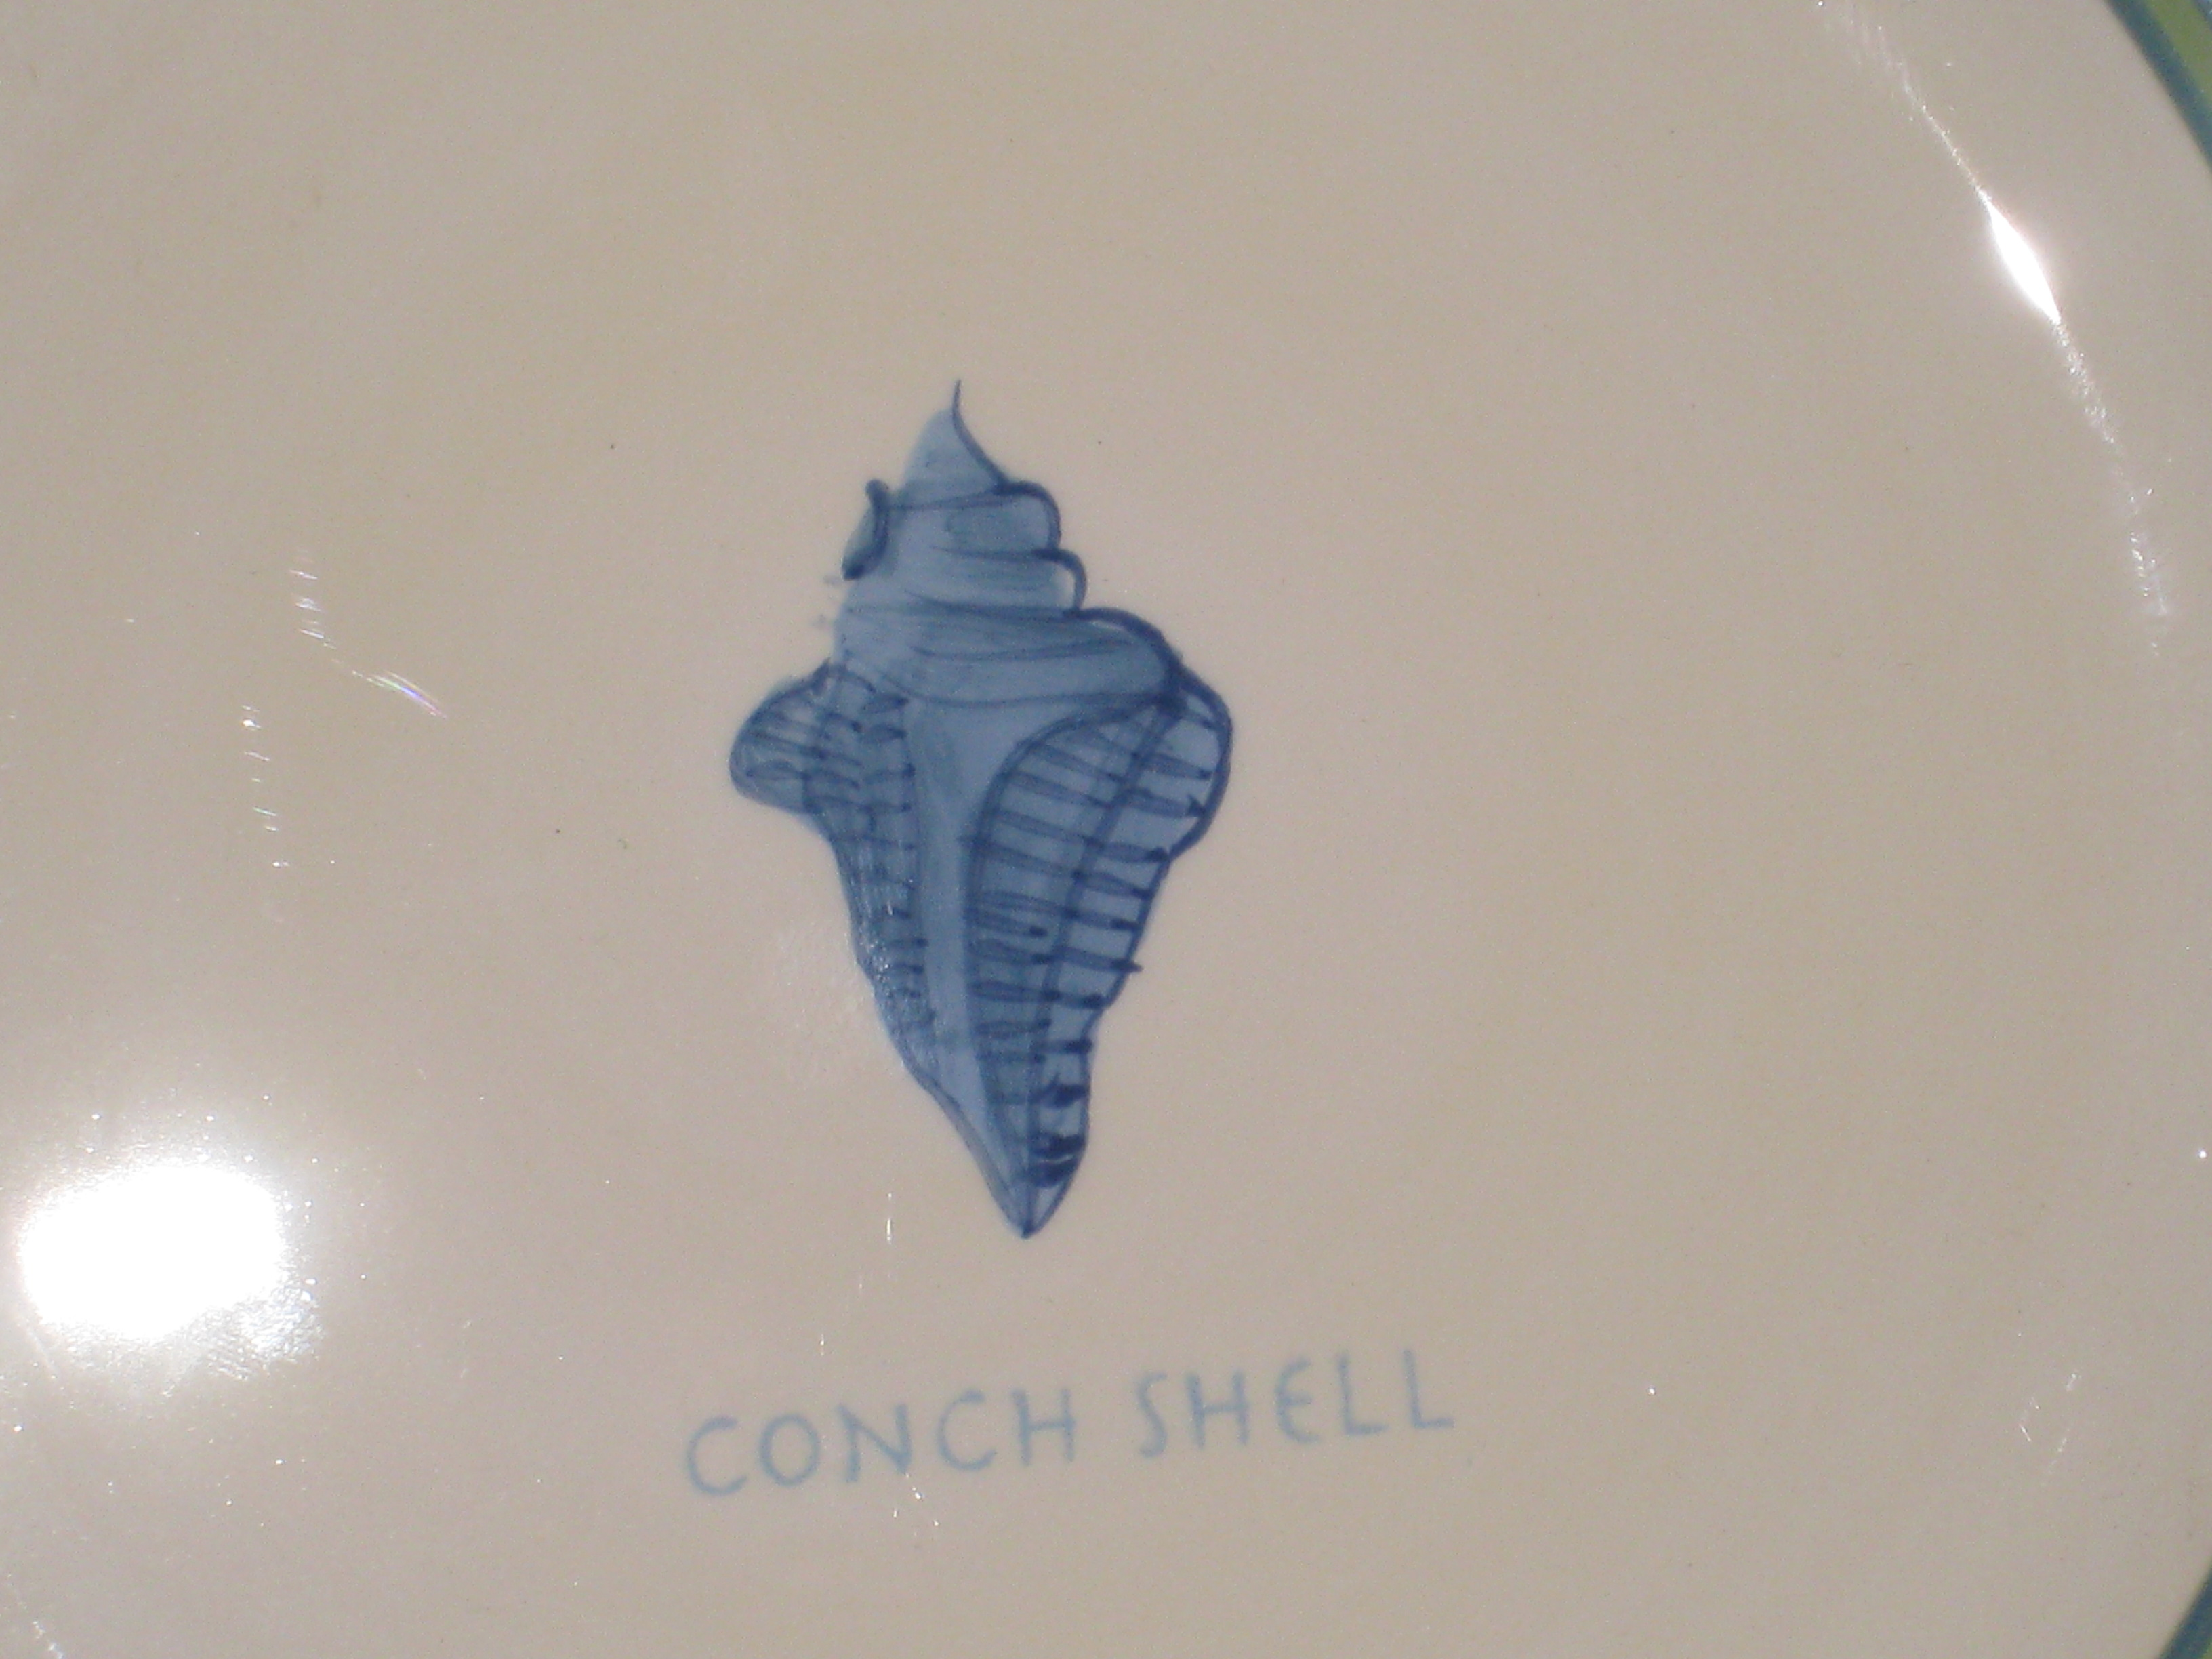 Reference Image of Conch